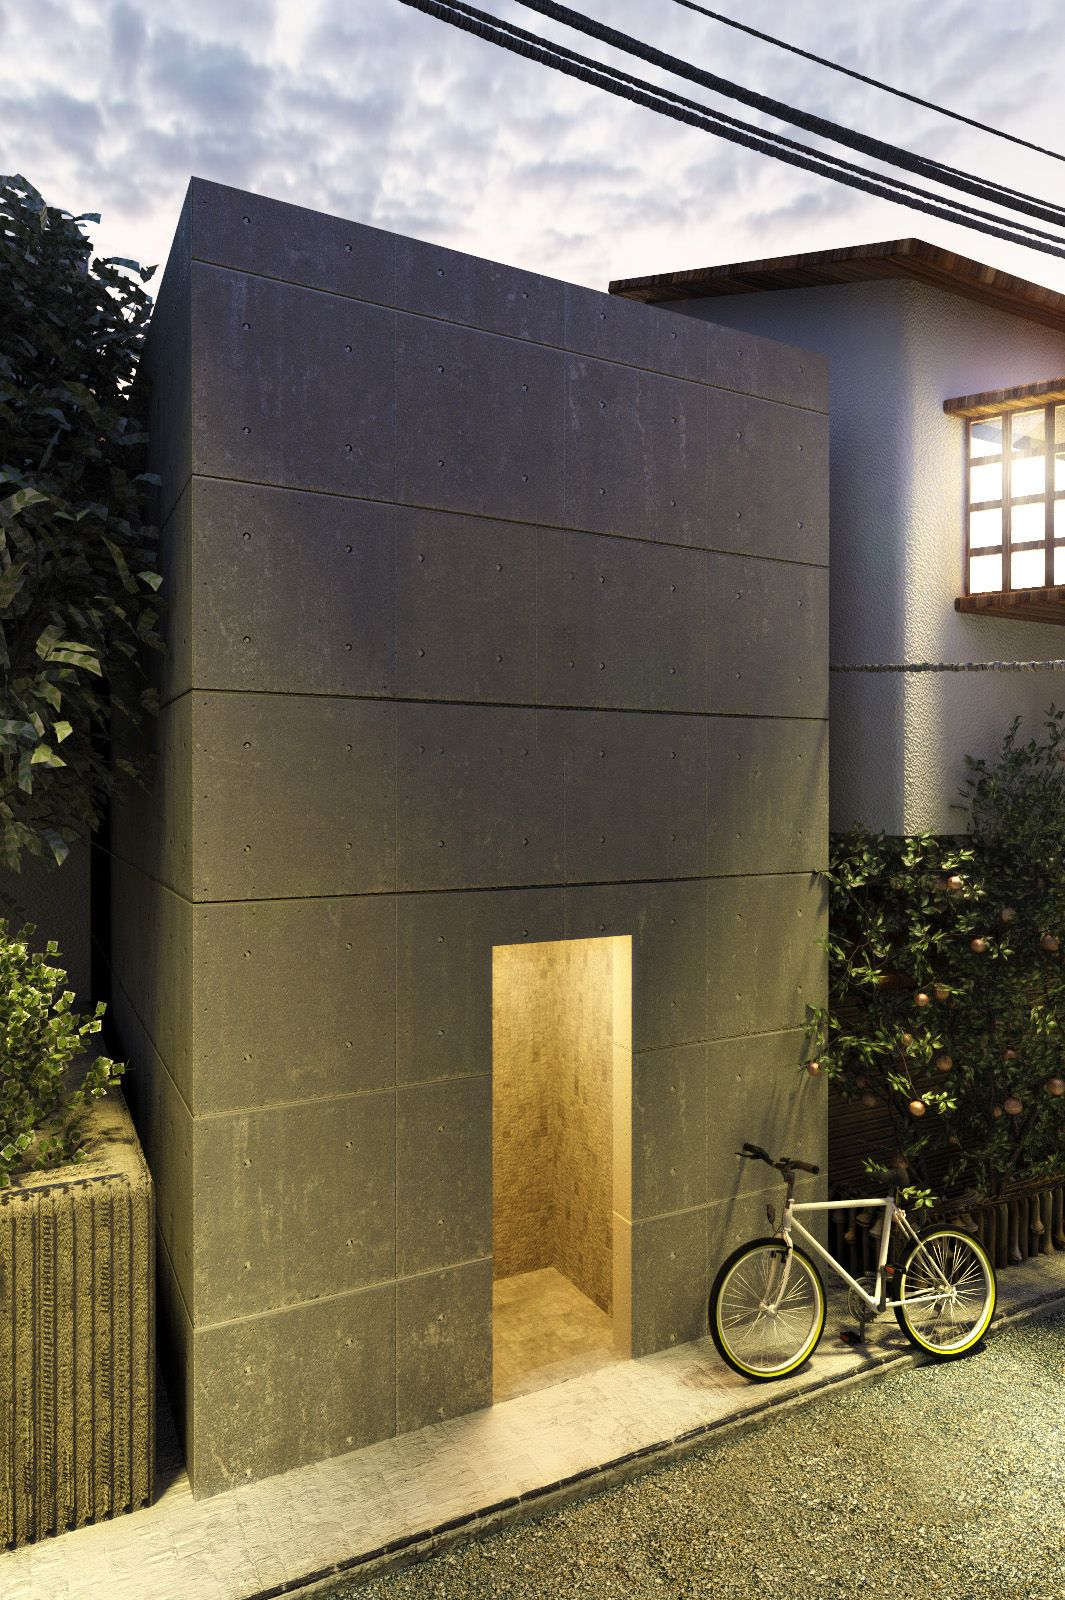 Ando tadao rokko house pinterest - Love Tadao Ando S Use Of Concrete But It Must Get Terribly Cold Azuma House